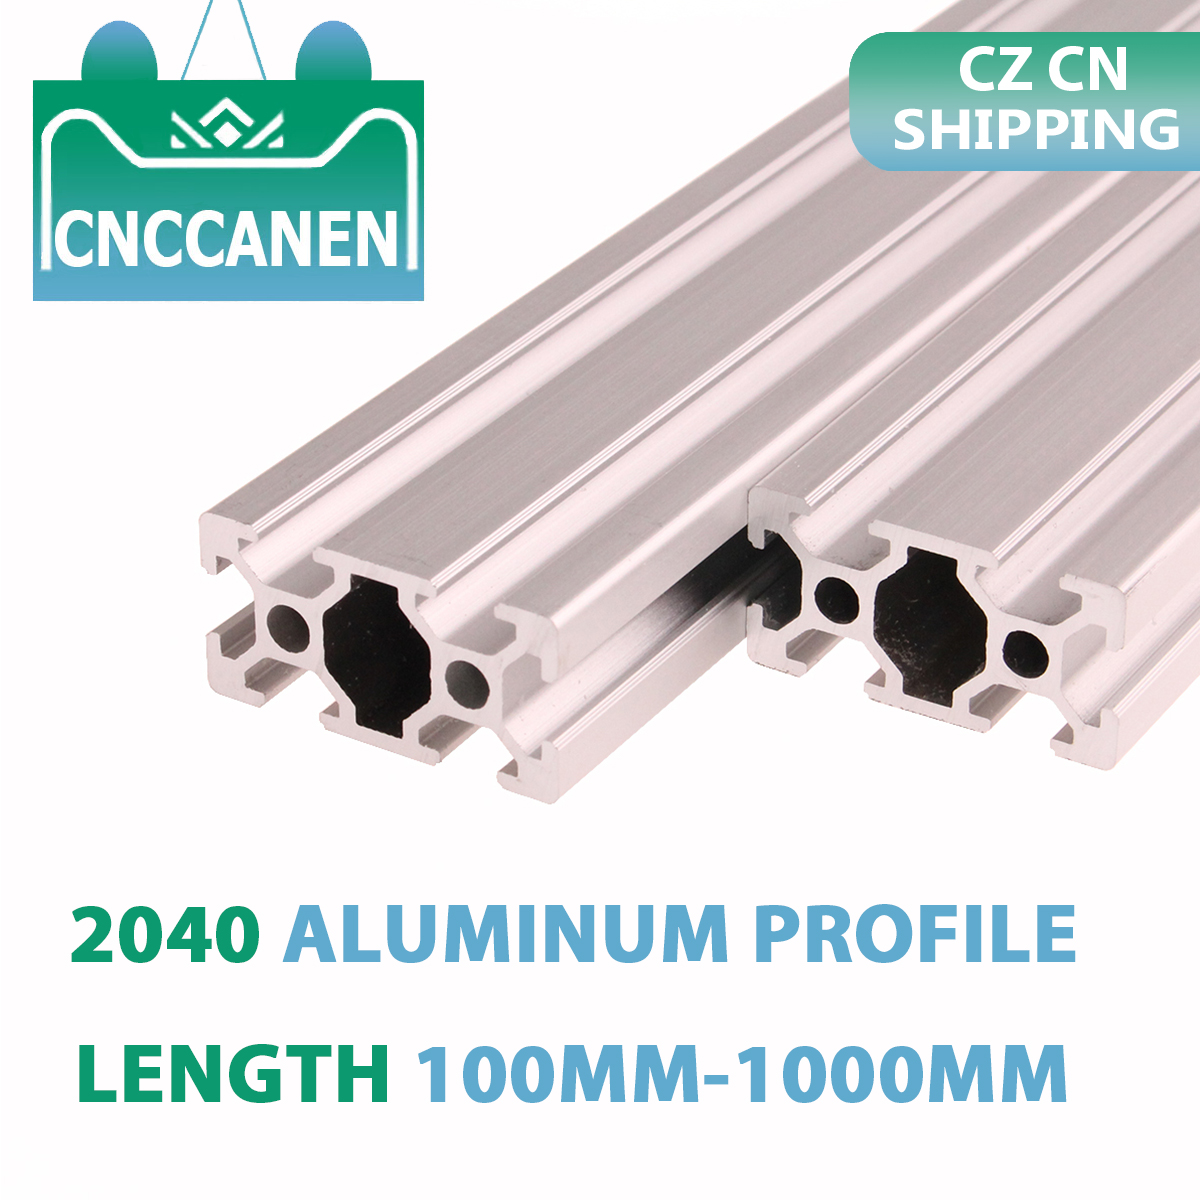 CZ CN Shipping 2PCS <font><b>2040</b></font> Aluminum <font><b>Extrusion</b></font> Profile 100mm-1000mm Length European Standard Anodized for CNC 3D Printer Parts DIY image